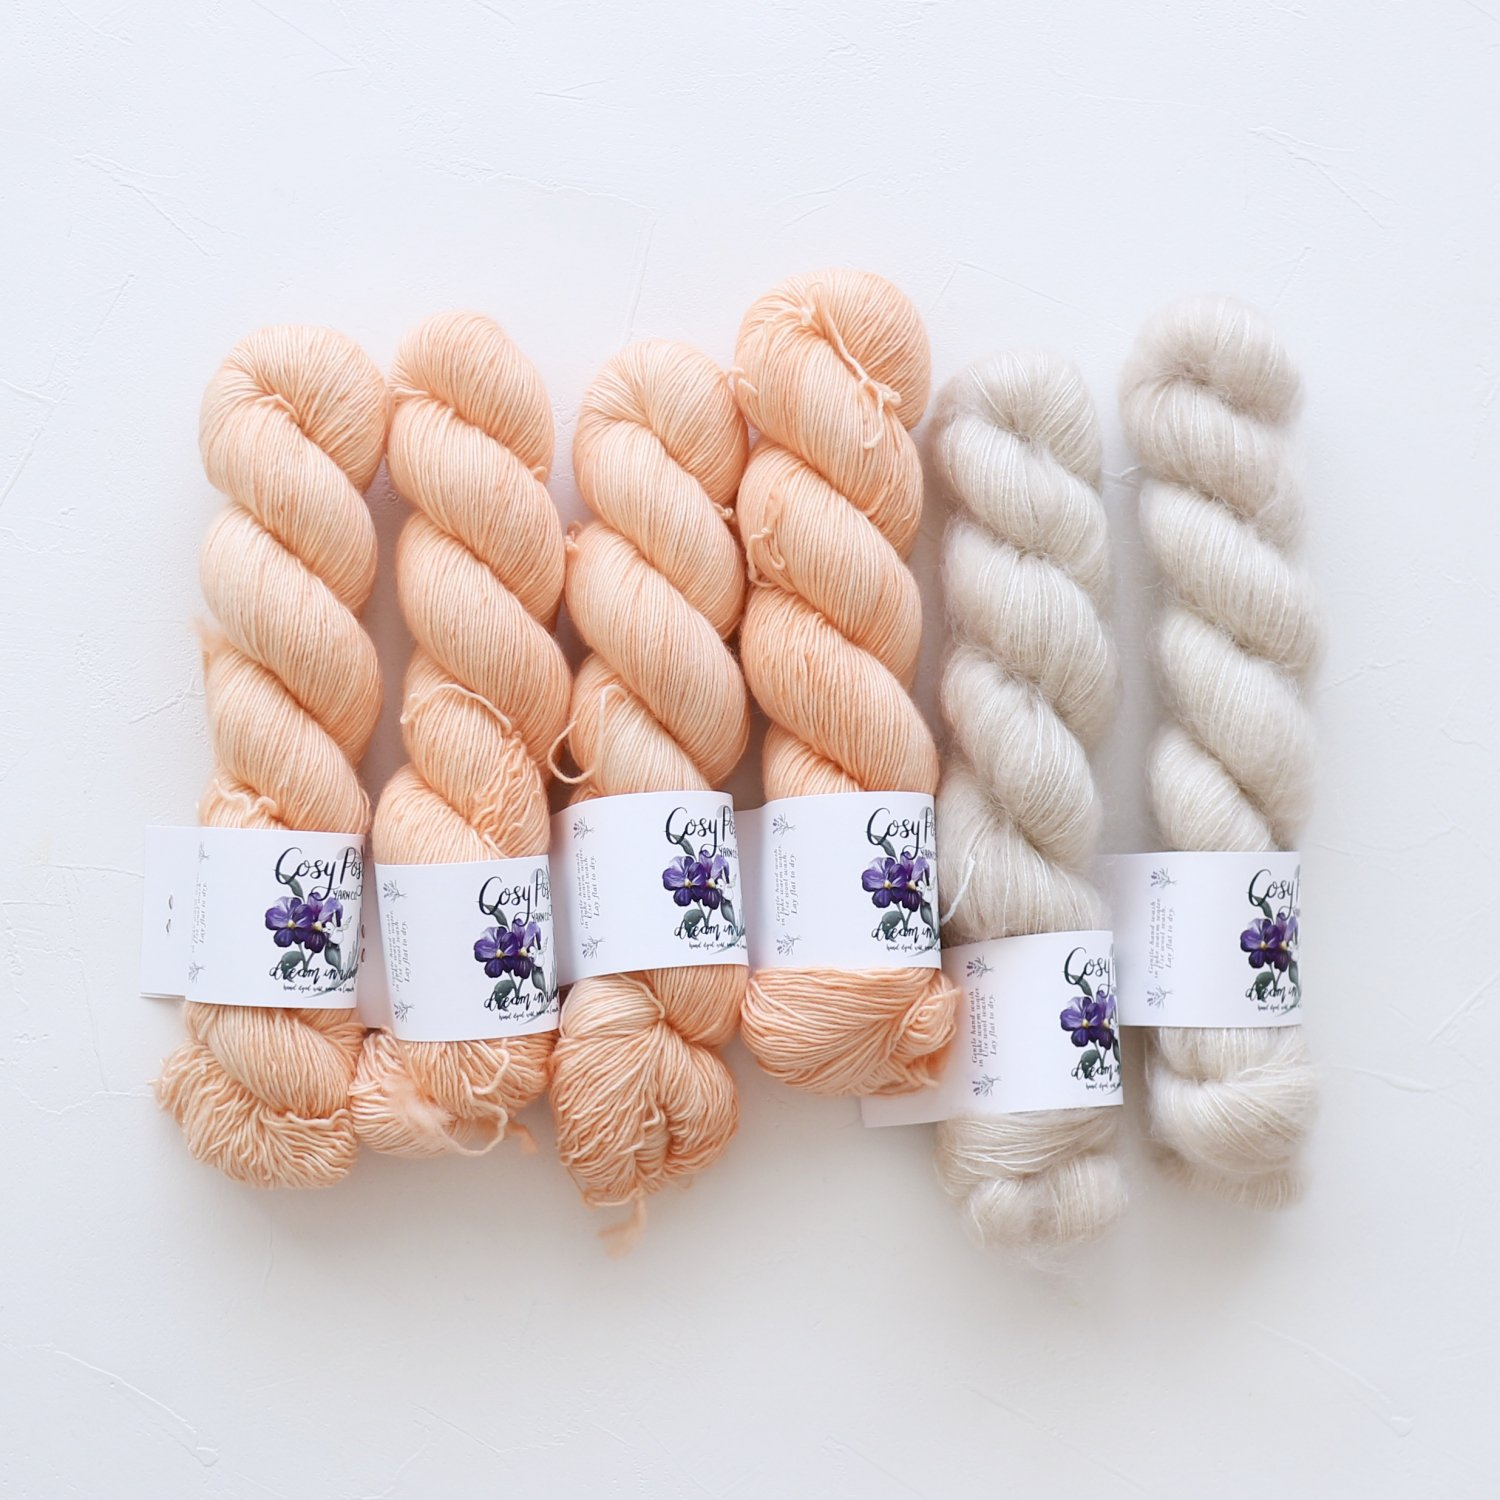 【「Nuvola」色合わせセット】<br>Cosy Posy Yarn<br>Drop Candy Kセット(Mサイズ)